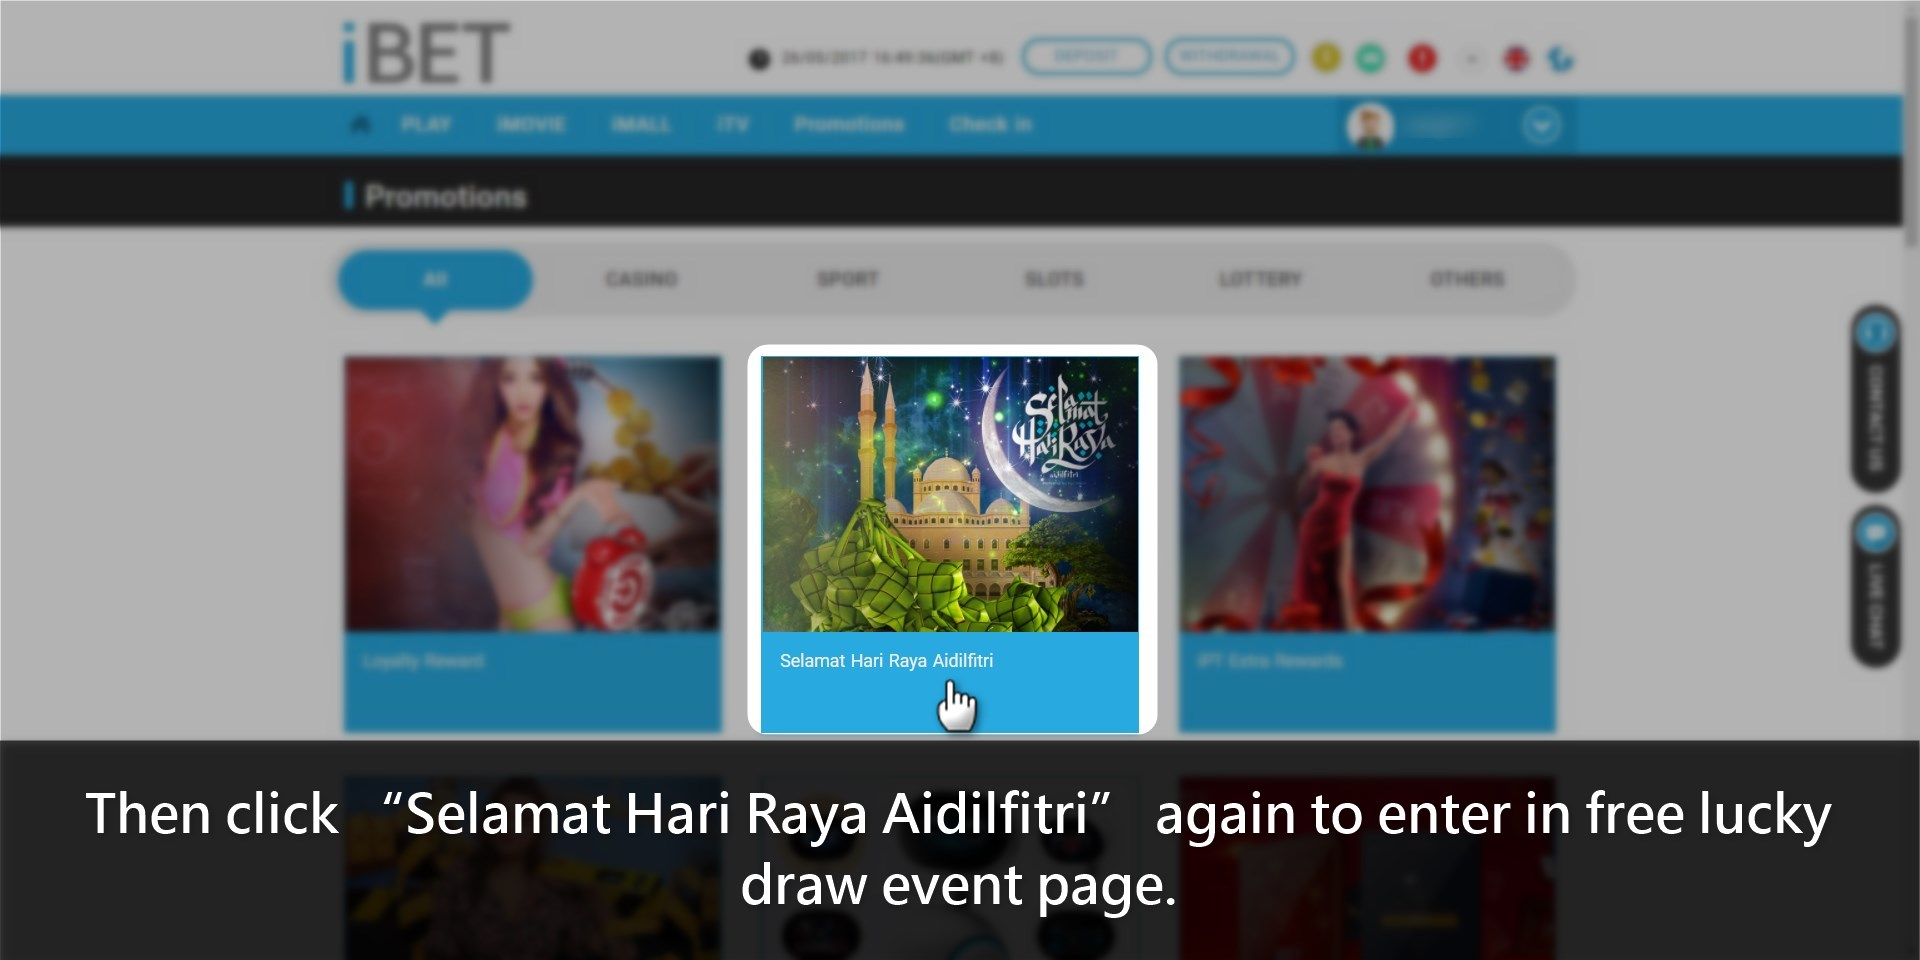 How to get iBET Hari Raya Aidilfitri tutorial